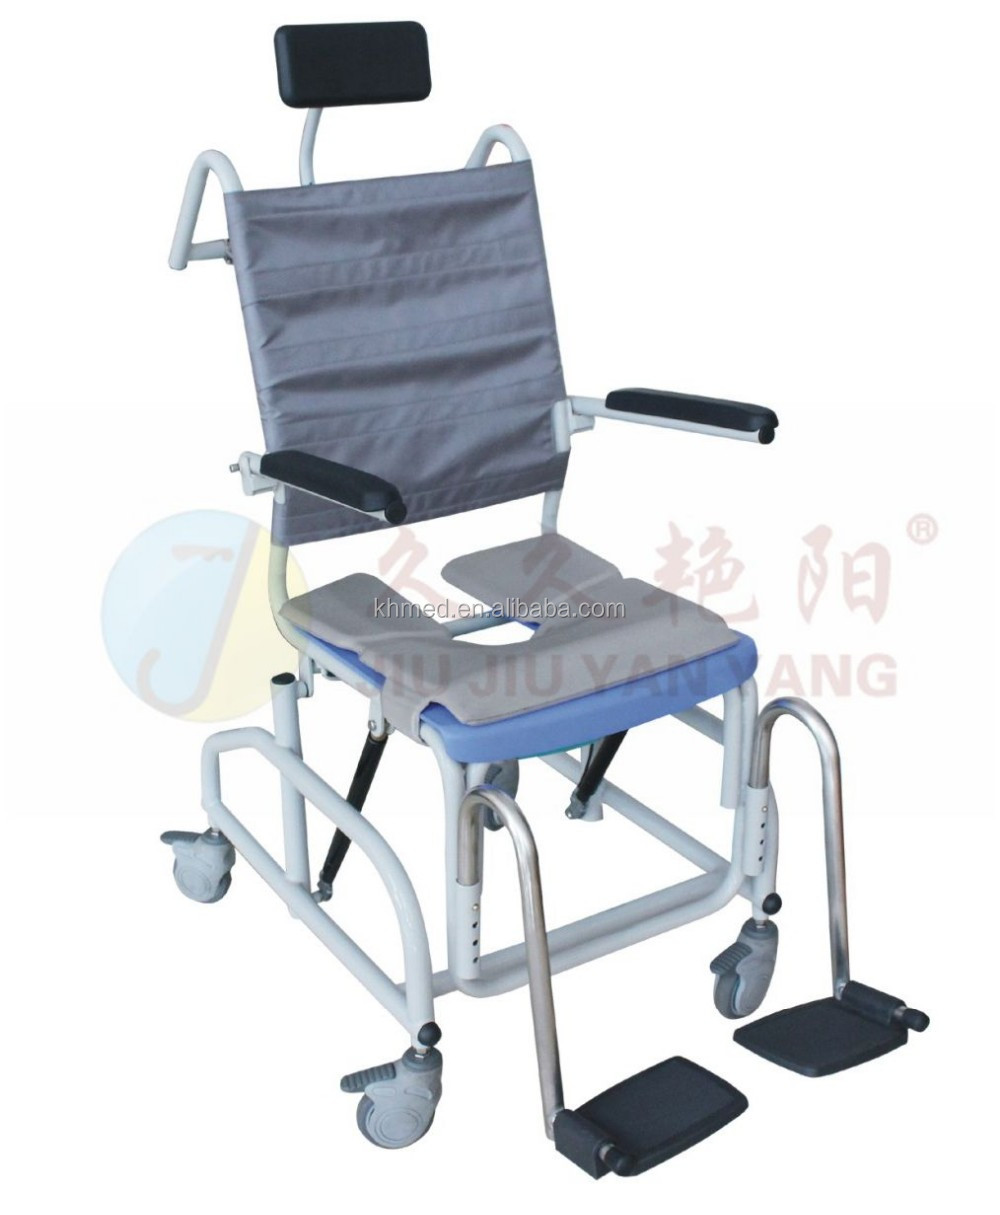 Jy Xzc 01 Multifunction Toilet Shower Chair With Wheels For Disabled People Buy Multifunction Toilet Chair Manual Shower Chair Toilet Shower Chair